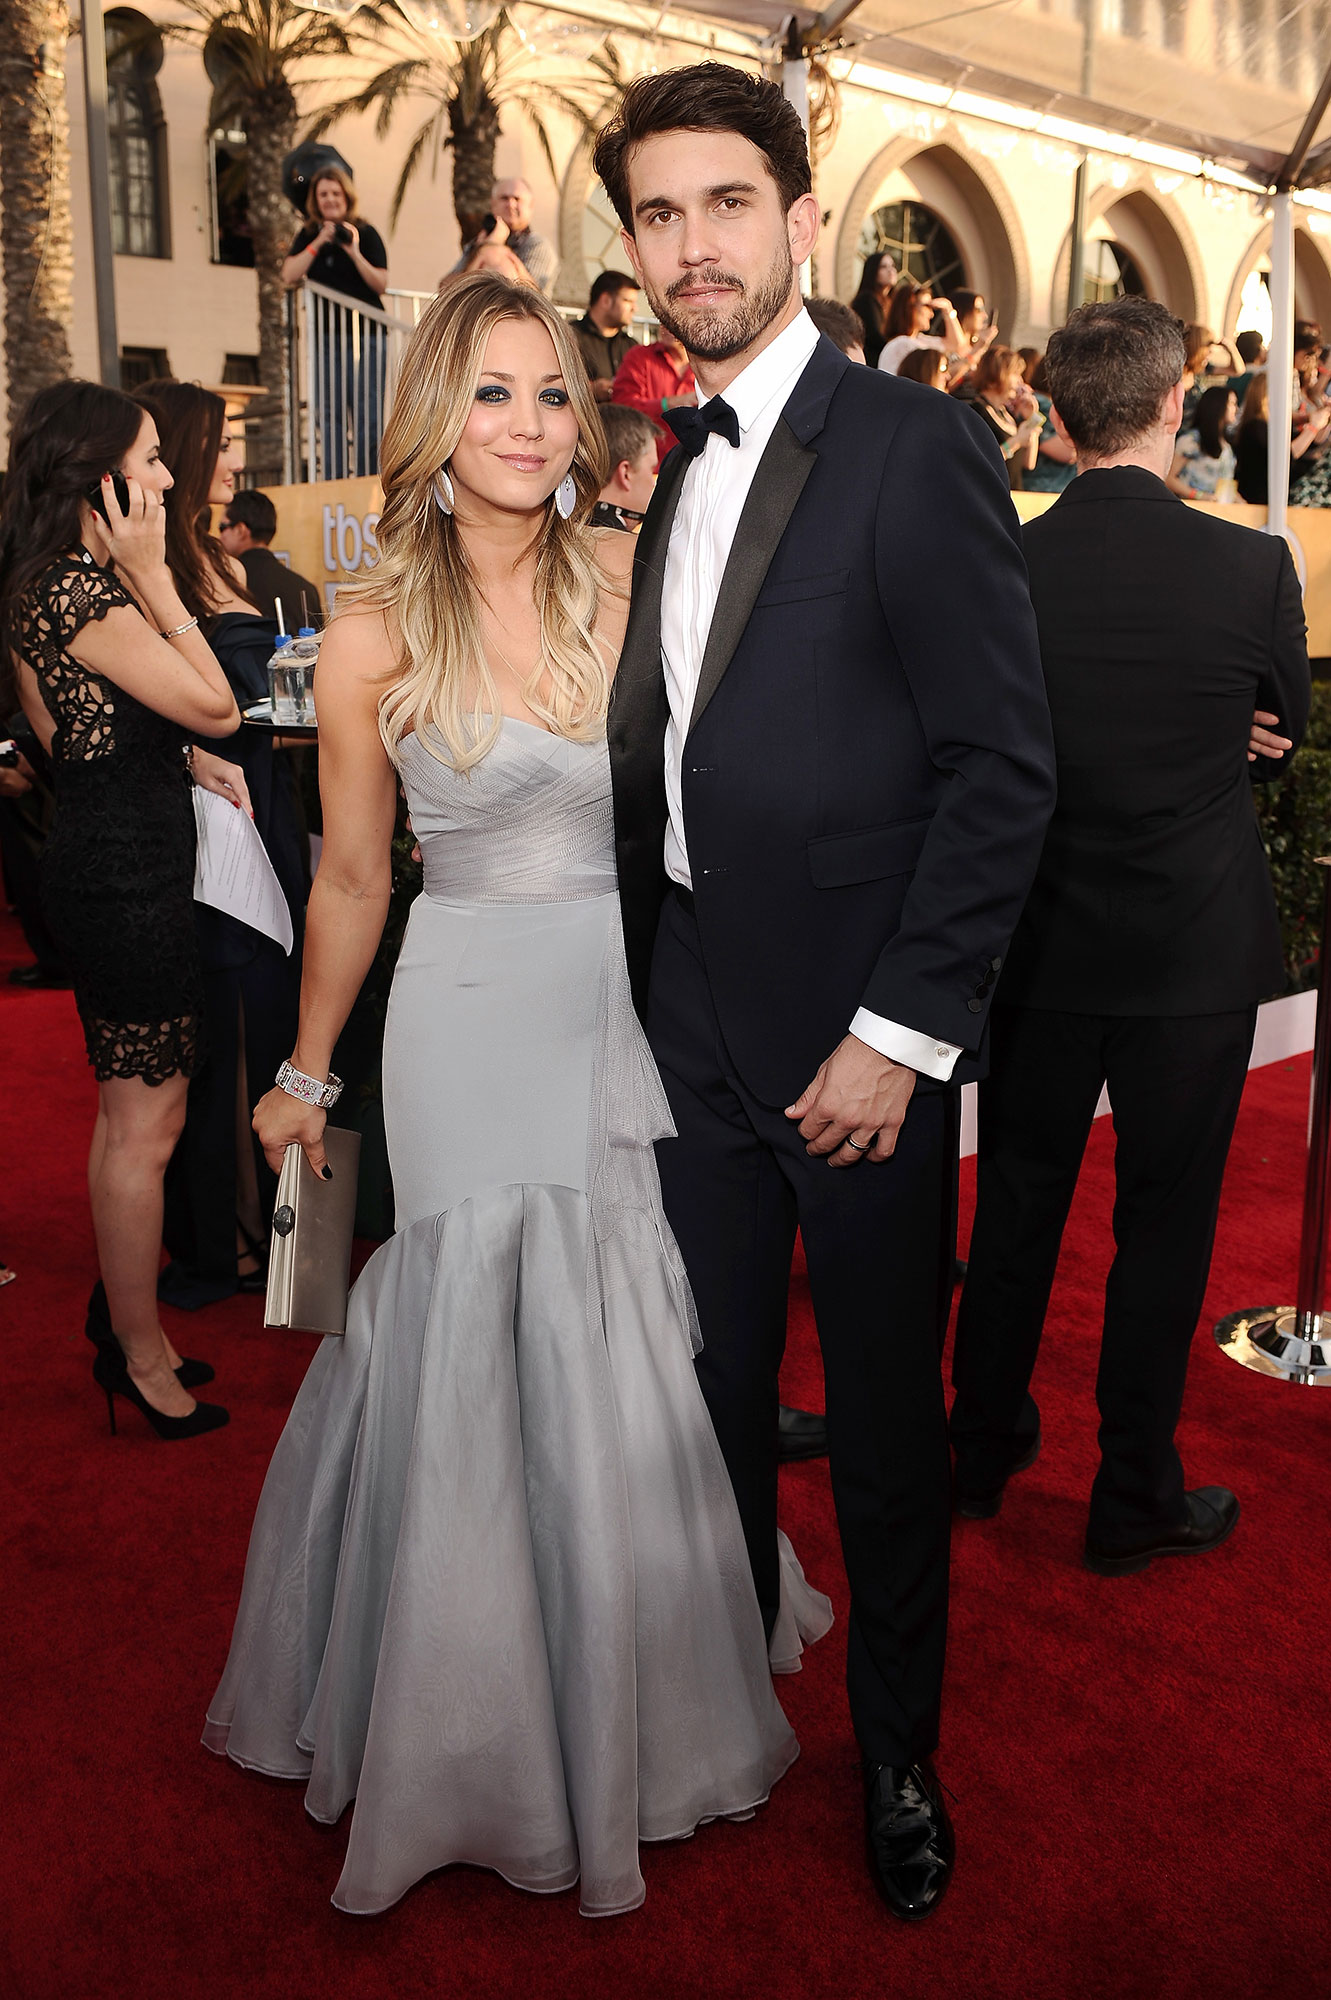 Kaley Cuoco and Ryan Sweeting - Engaged: September 2013 Married: December 31, 2013 Status: Divorced in May 2016; Cuoco is now married to Karl Cook